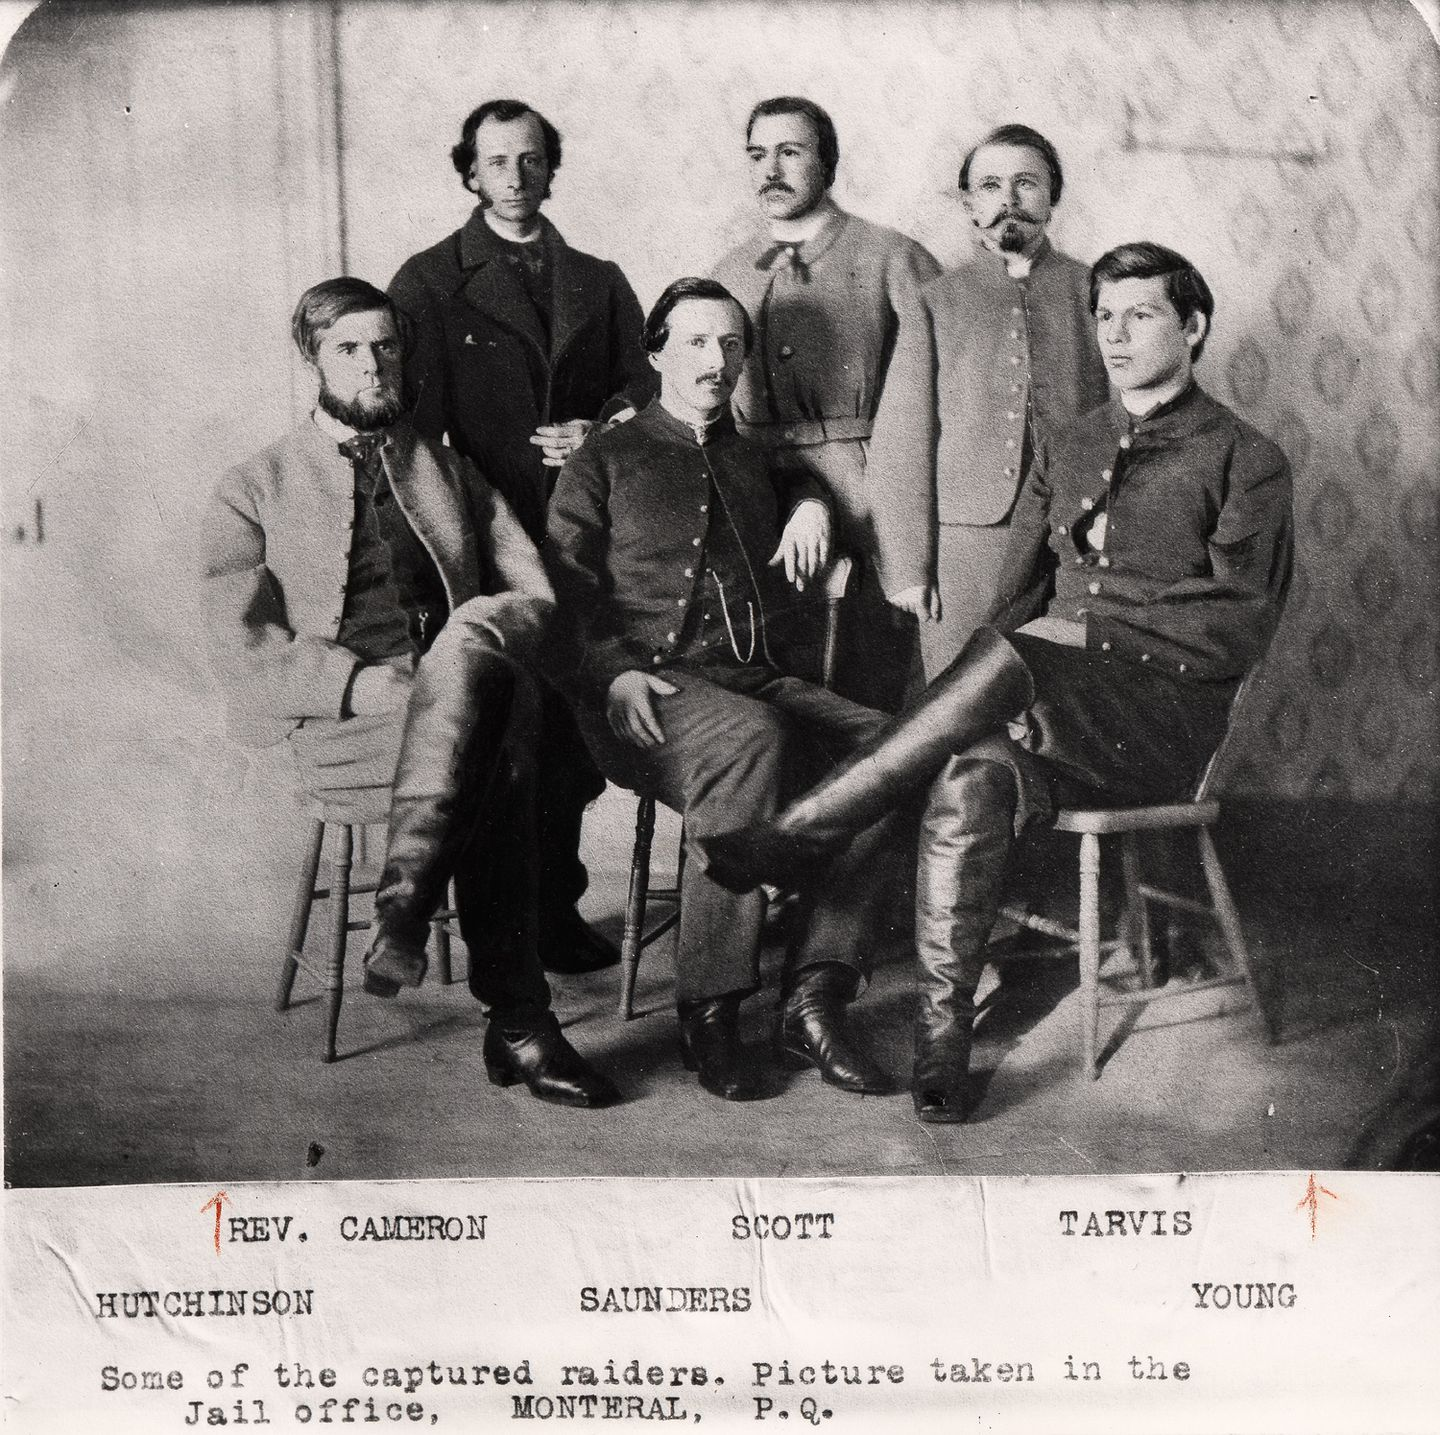 Lt. Bennett Young, seated at right, and several other               Confederates who raided St. Albans banks pose for a               photograph while awaiting trial in Canada. CREDIT: VERMONT               HISTORICAL SOCIETY (these images originally appeared in               Frank Leslie's magazine)